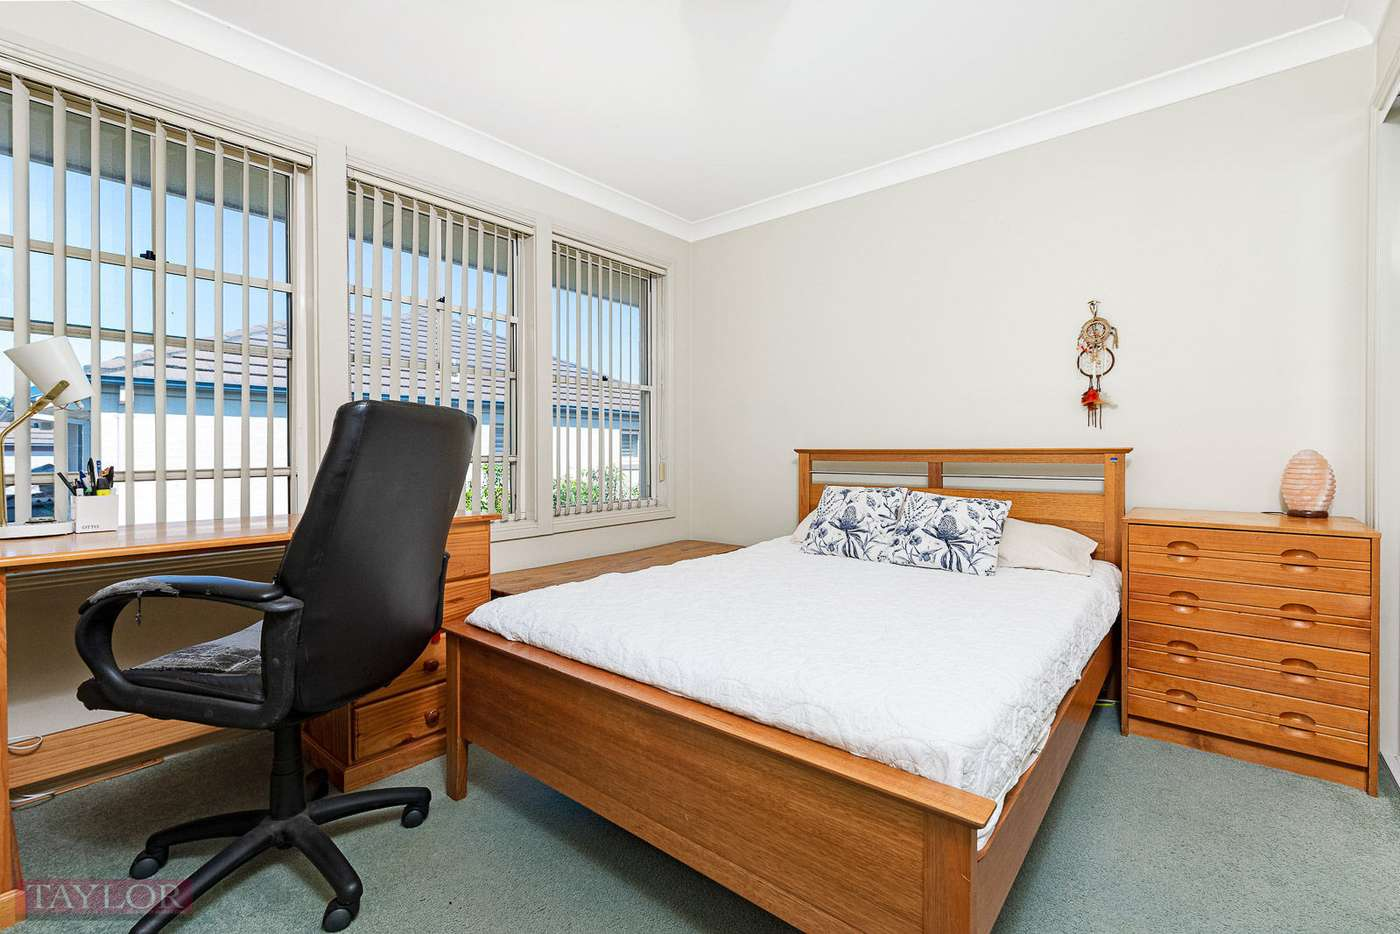 Sixth view of Homely townhouse listing, 2 The Mews, Oatlands NSW 2117